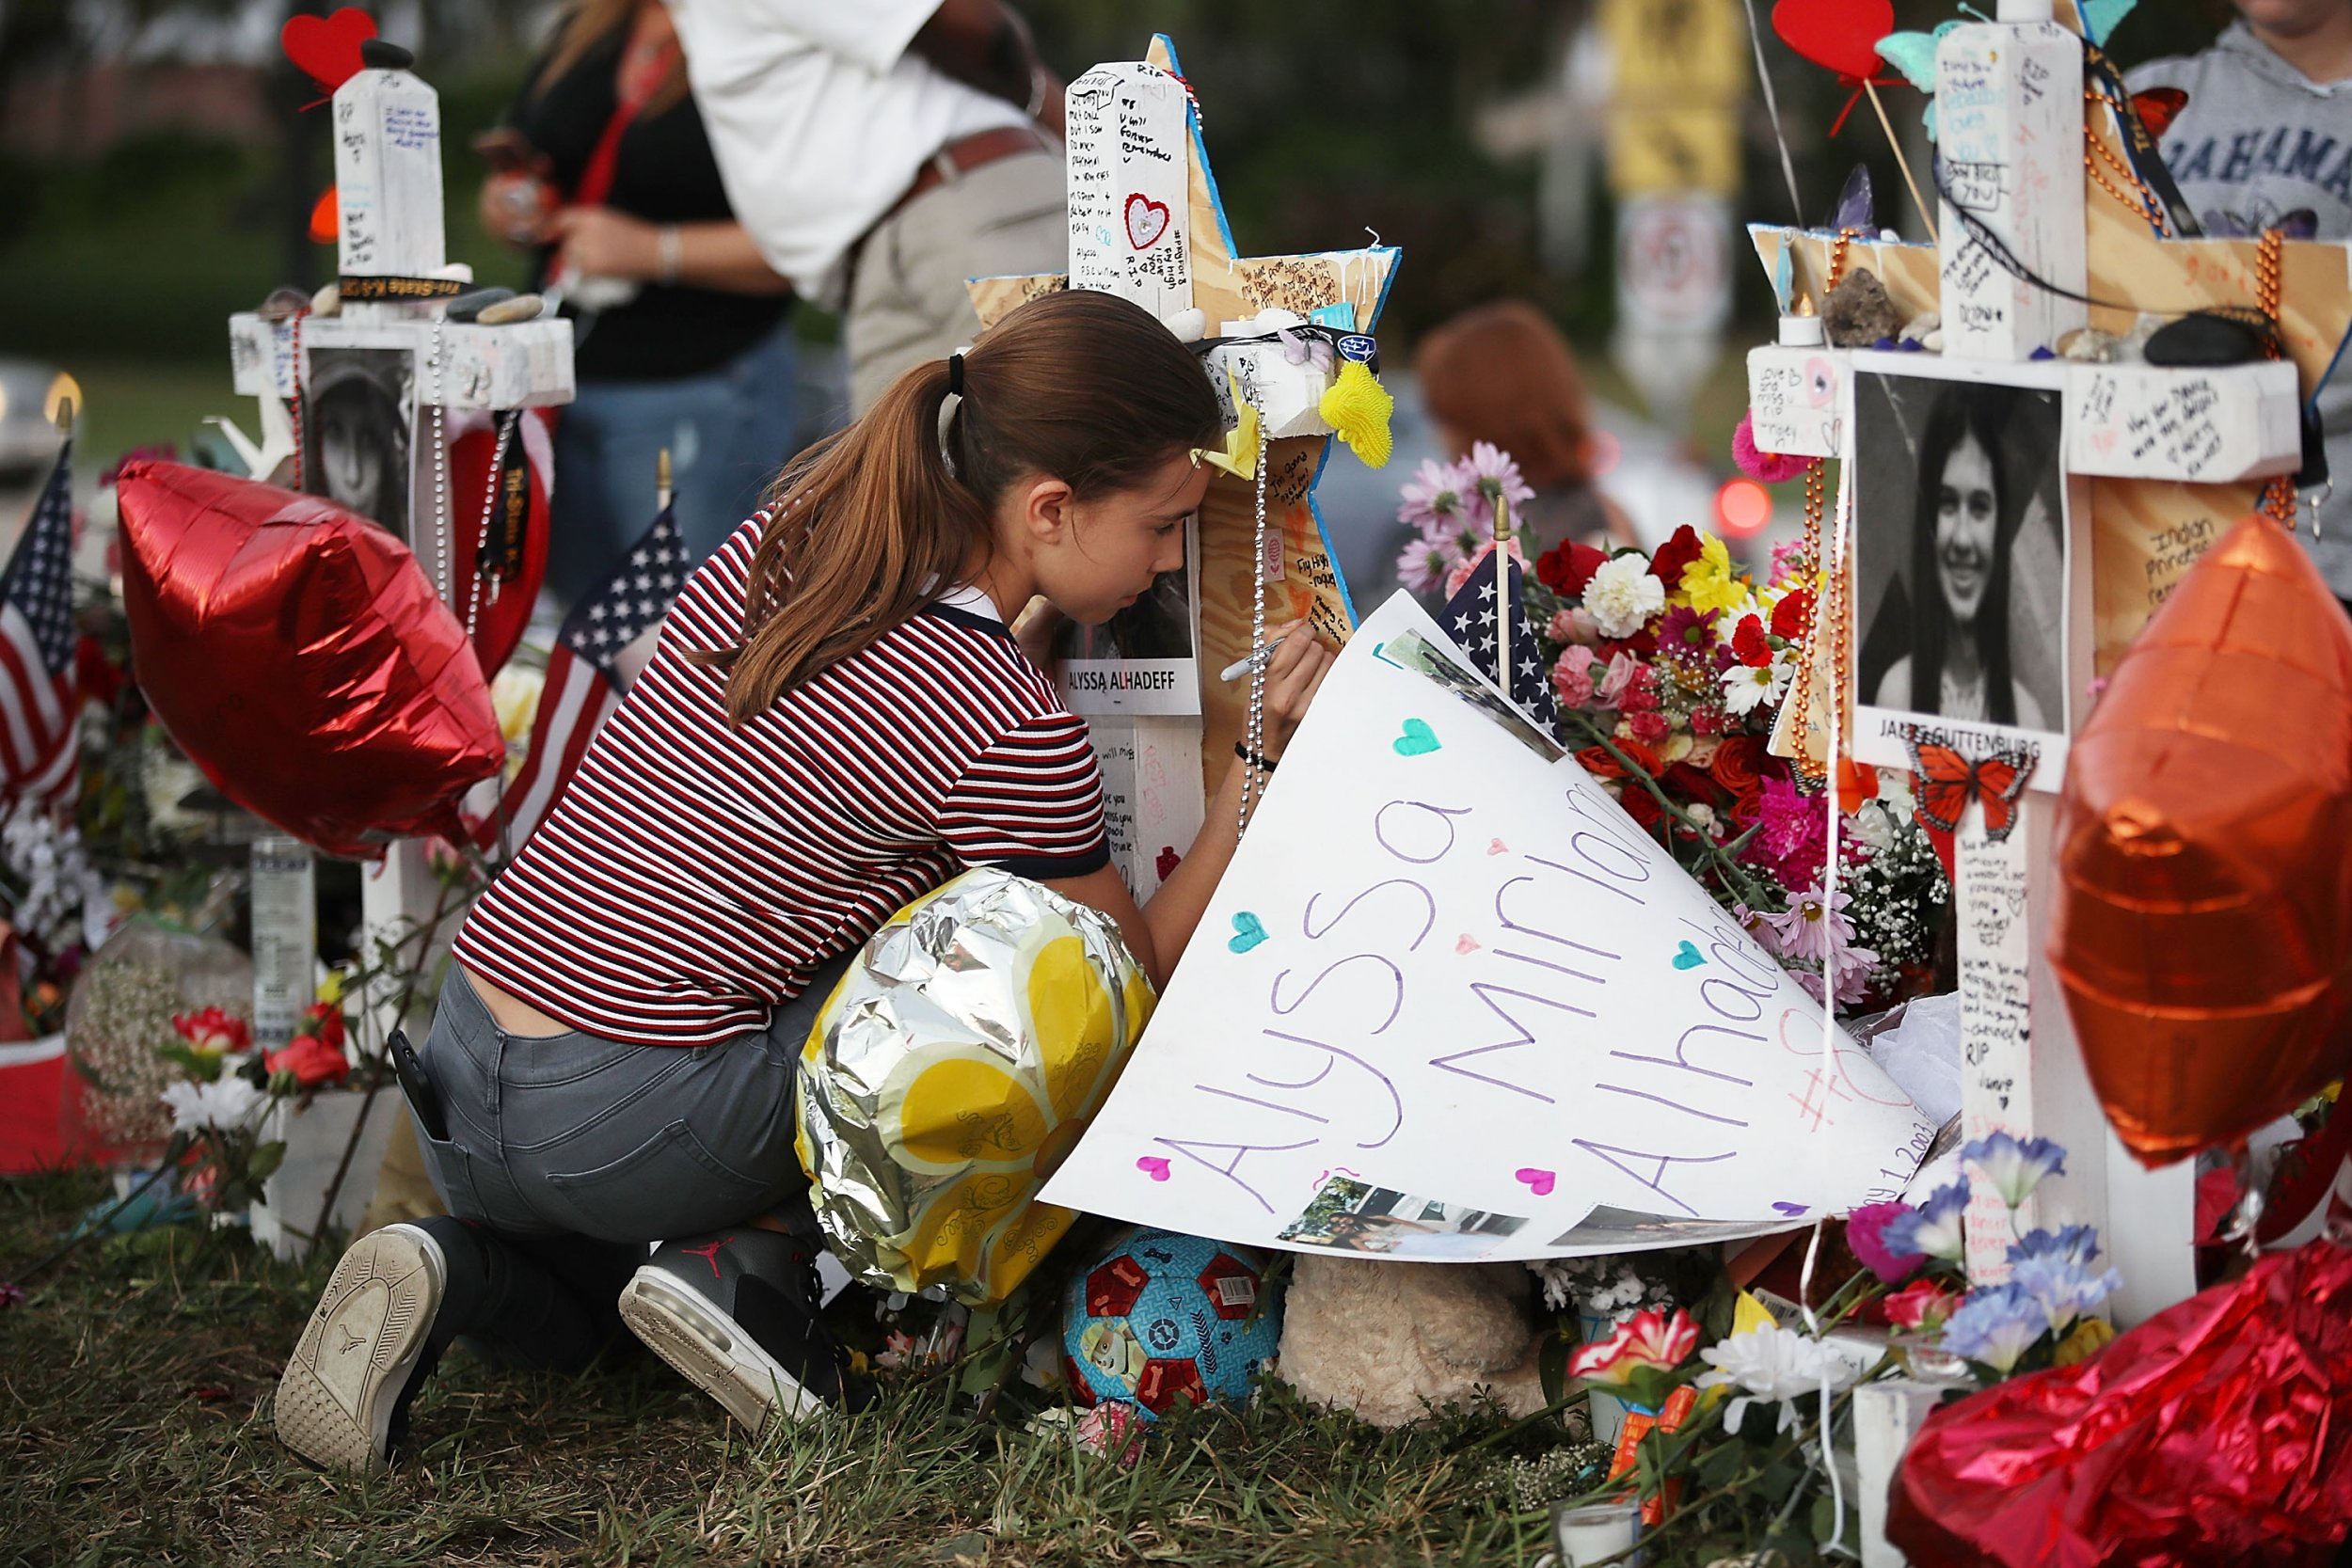 Marjory Stoneman Douglas High School memorial